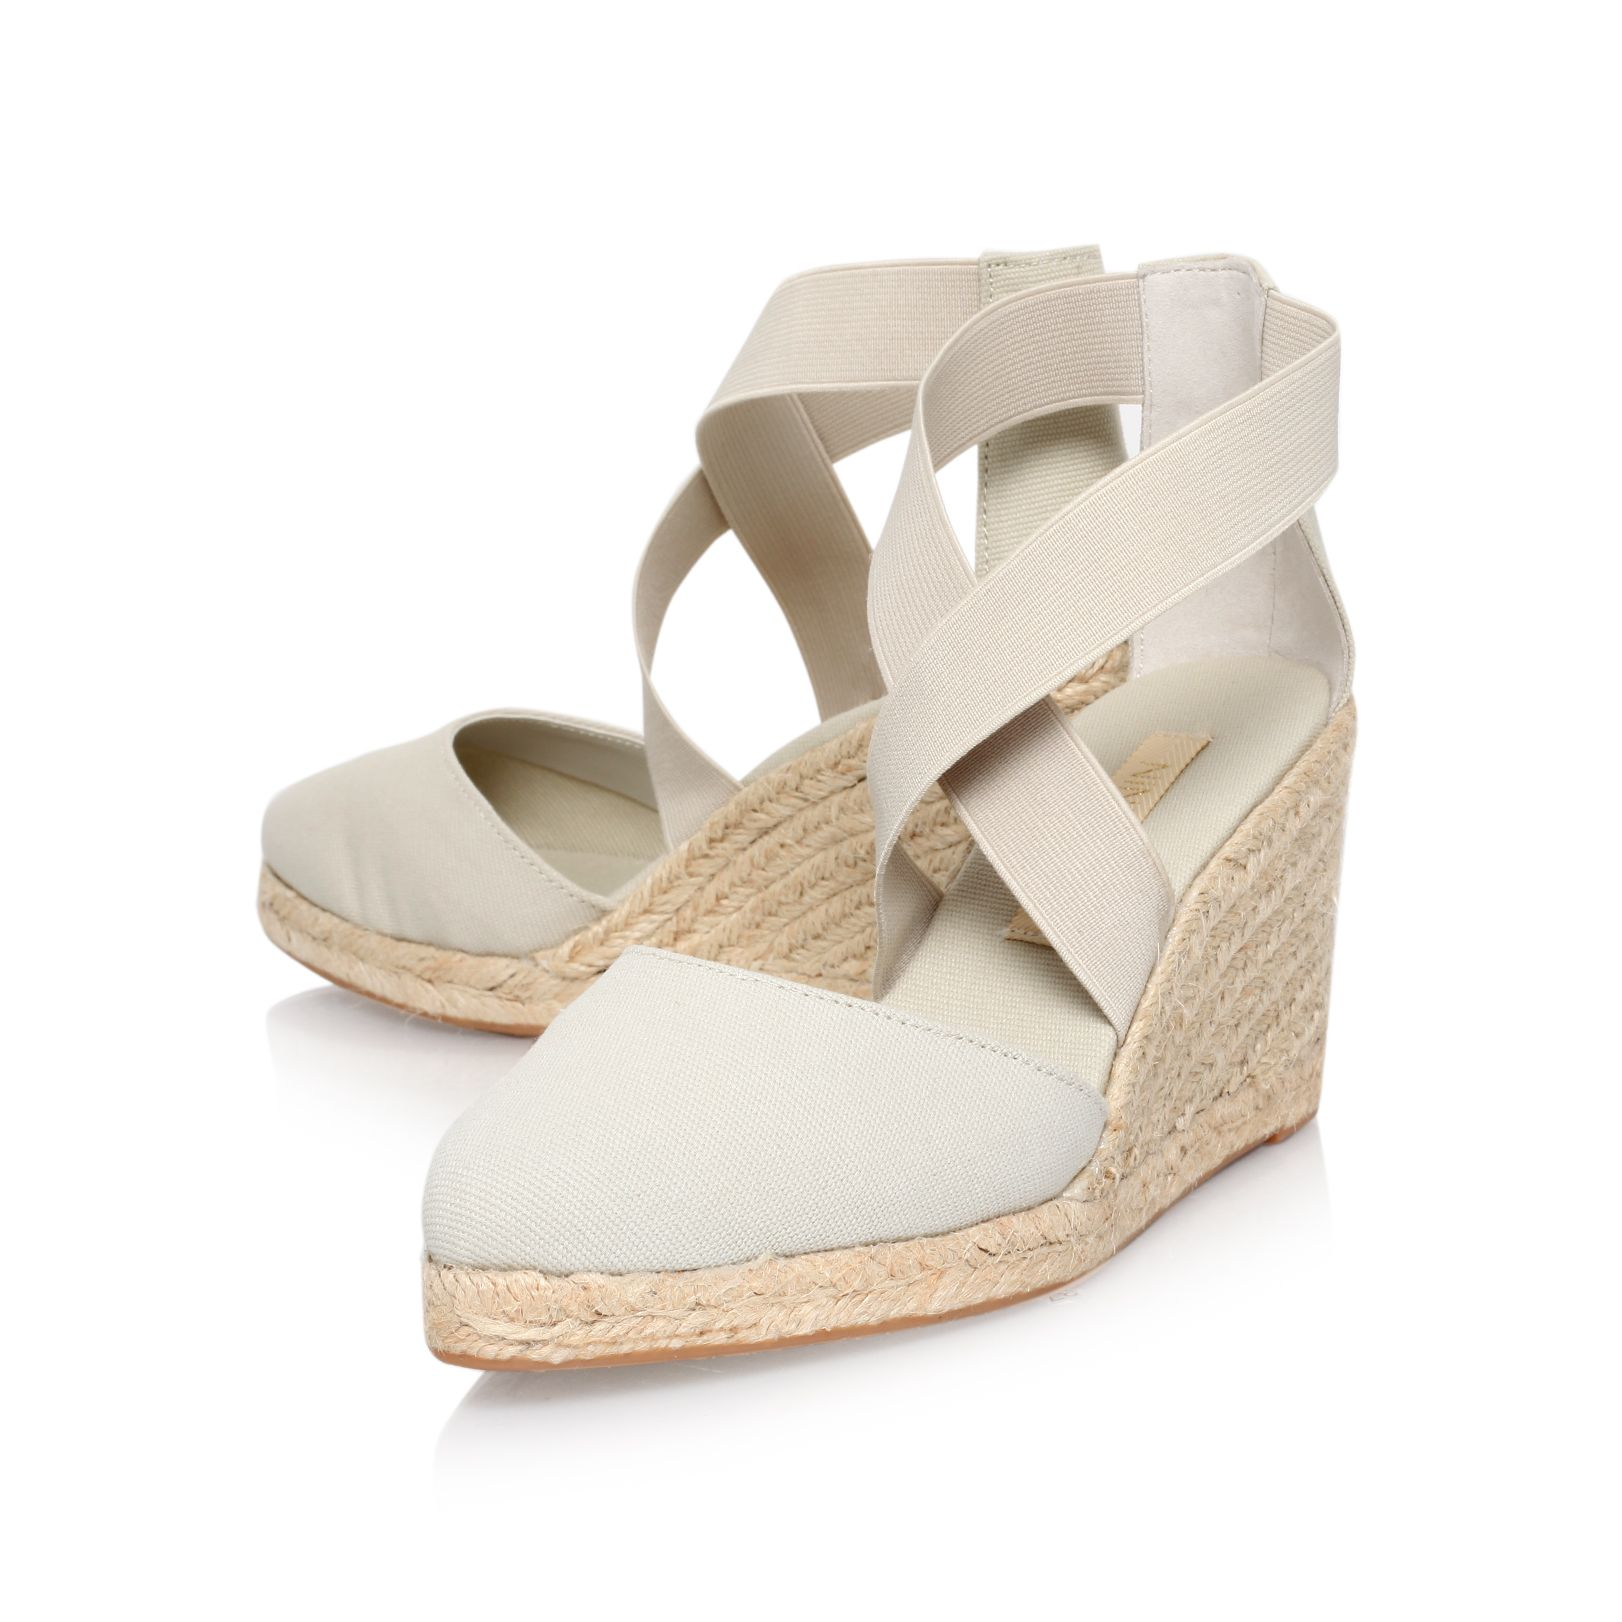 Memory2 suer wedge sandals